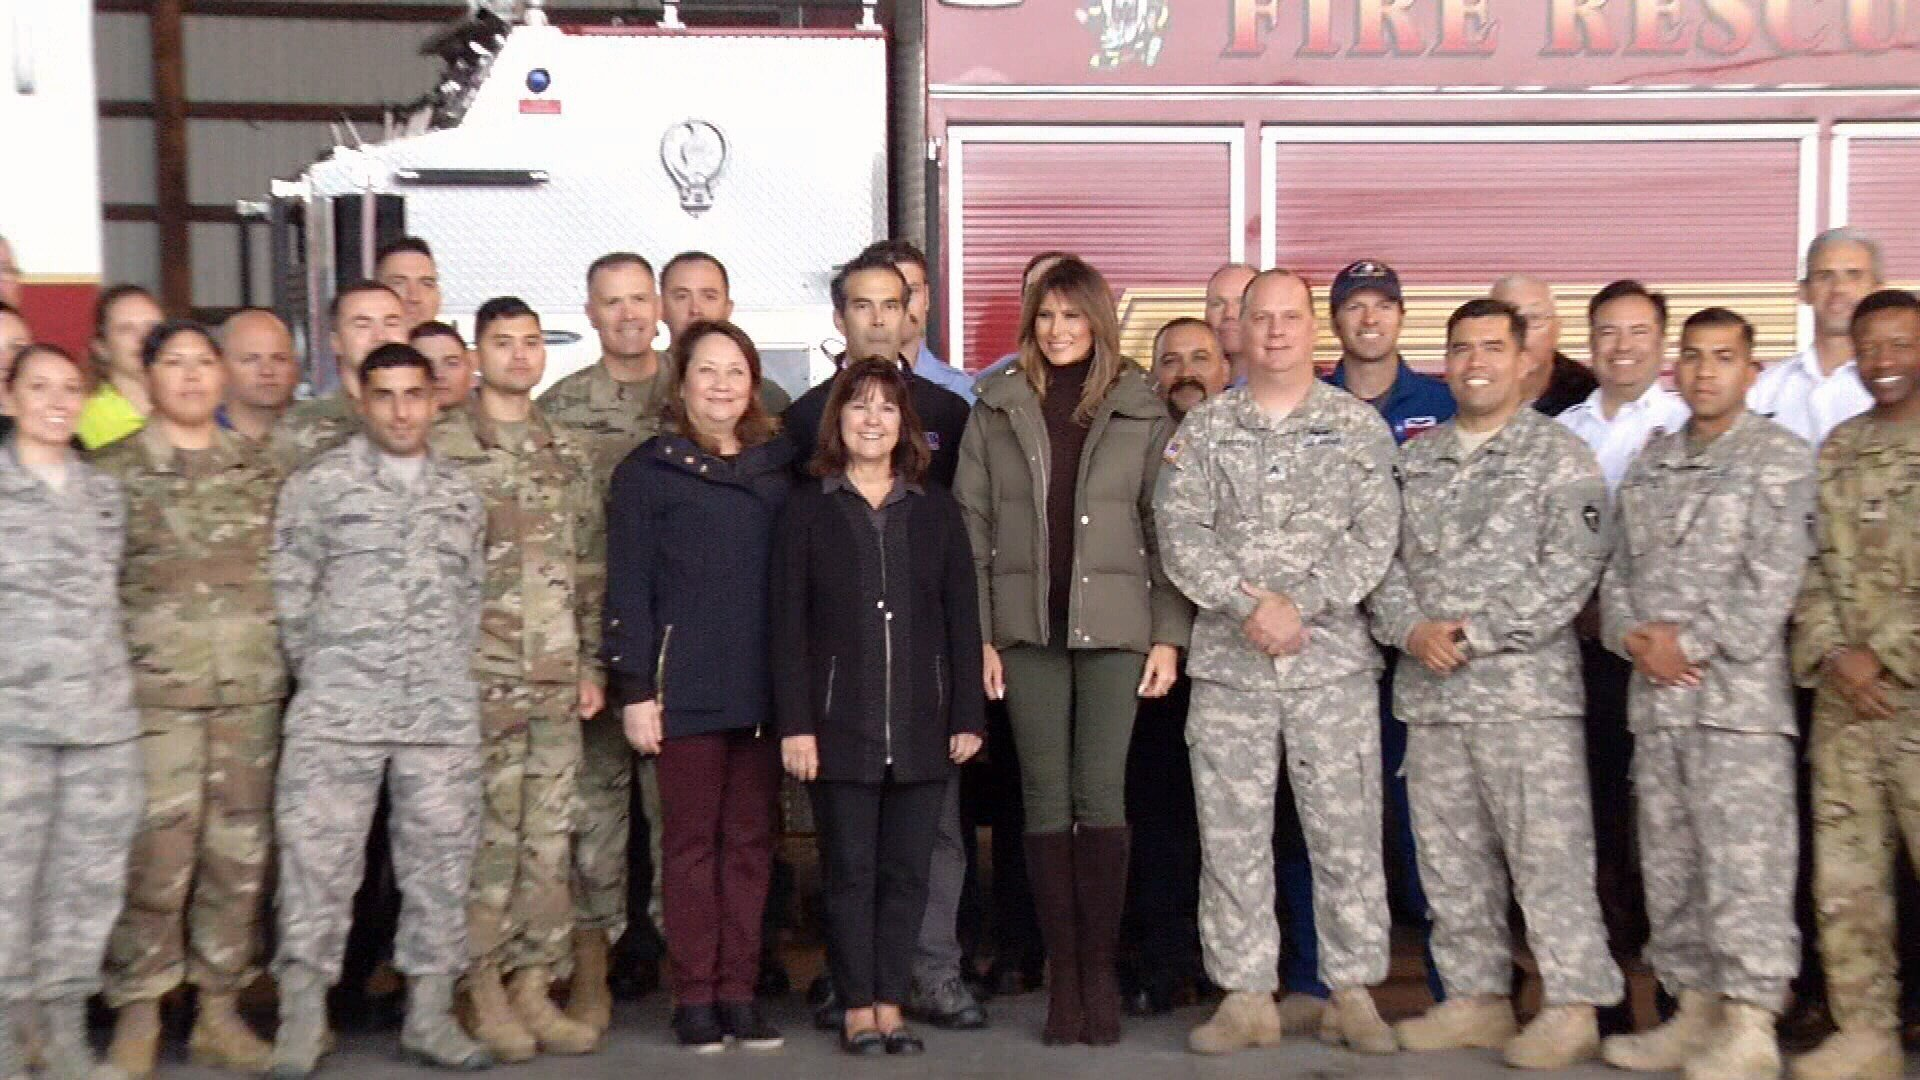 The First Ladies gave personal 'thank yous' to first responders and discussed hurricane recovery progress.